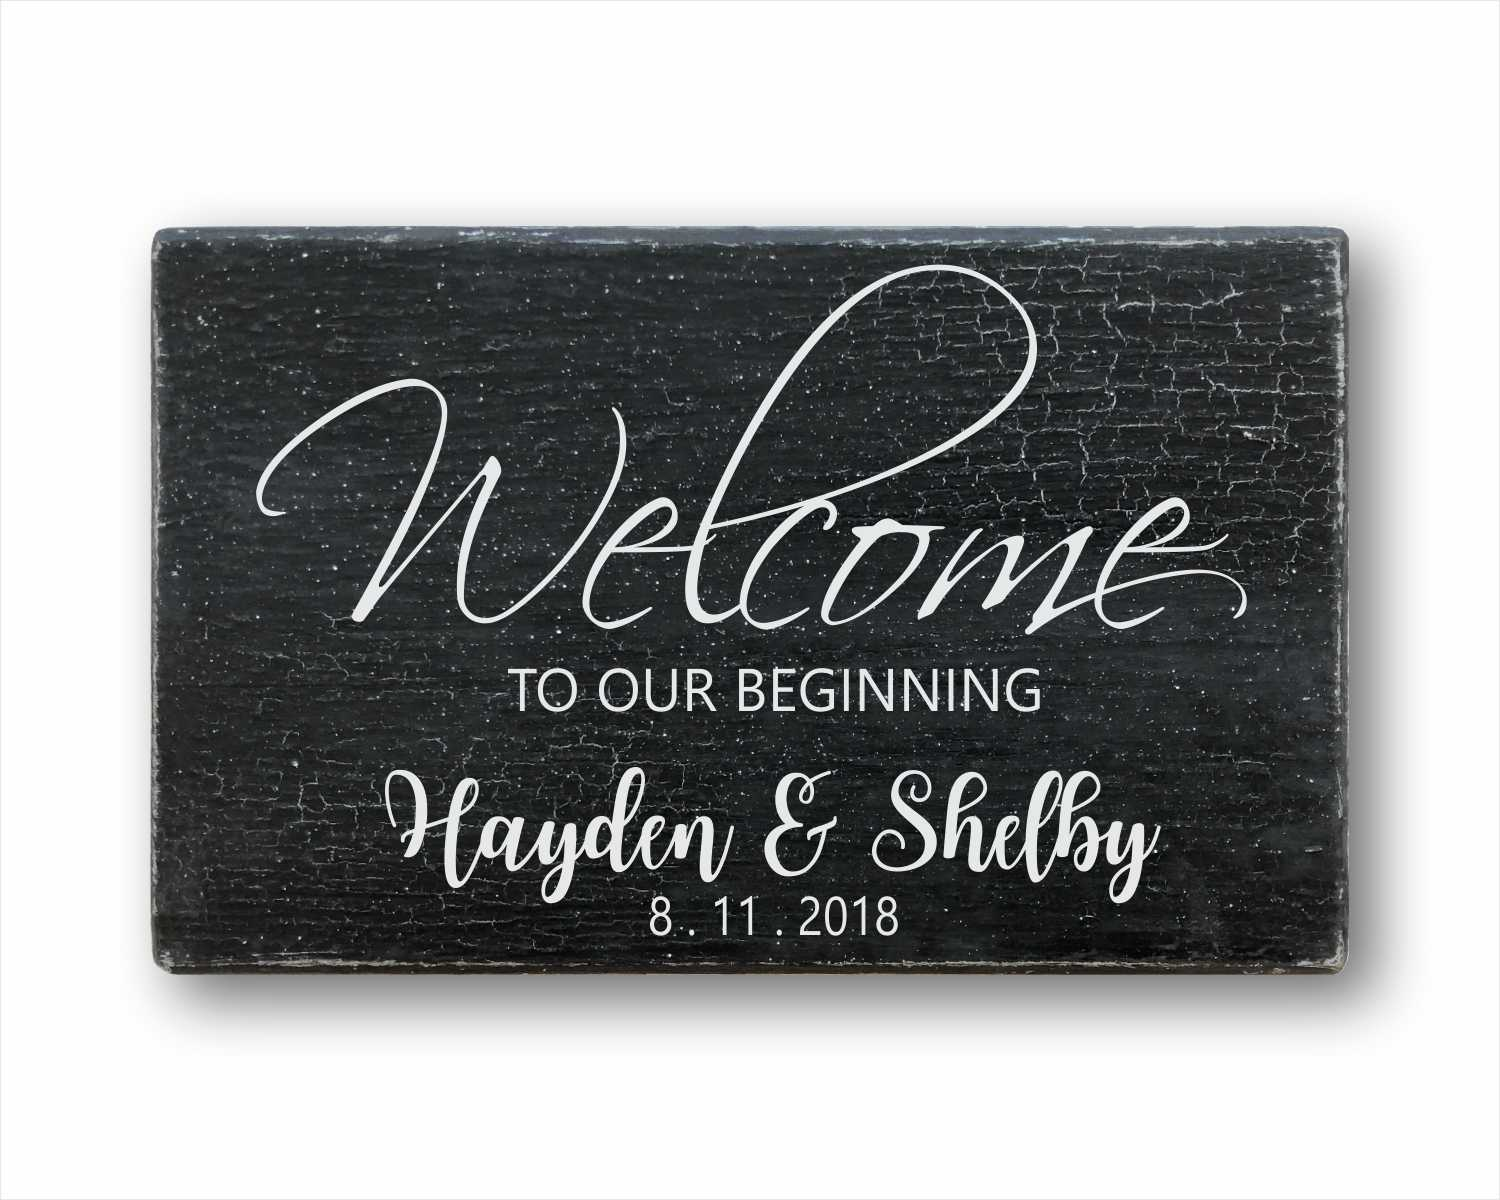 Welcome To Our Beginning: Personalized Rustic Rectangular Wood Sign